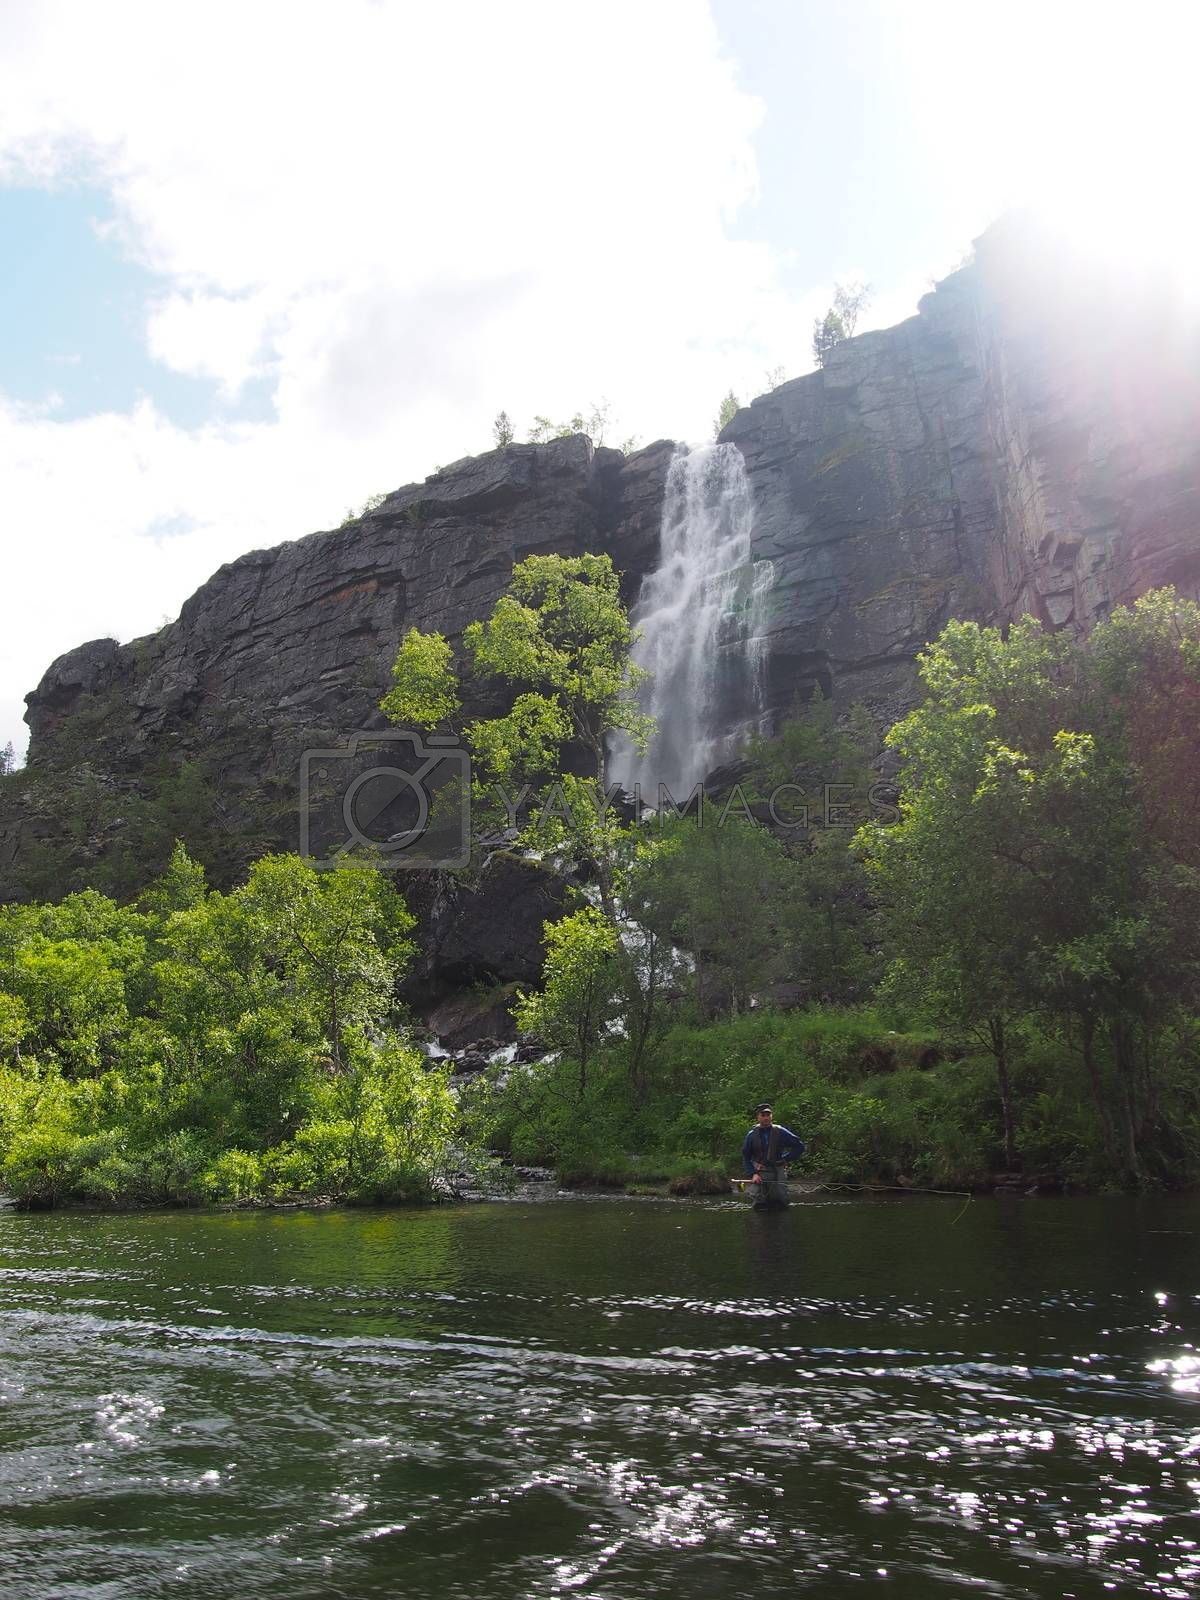 Flyfisher in front of waterfall, northern Norway